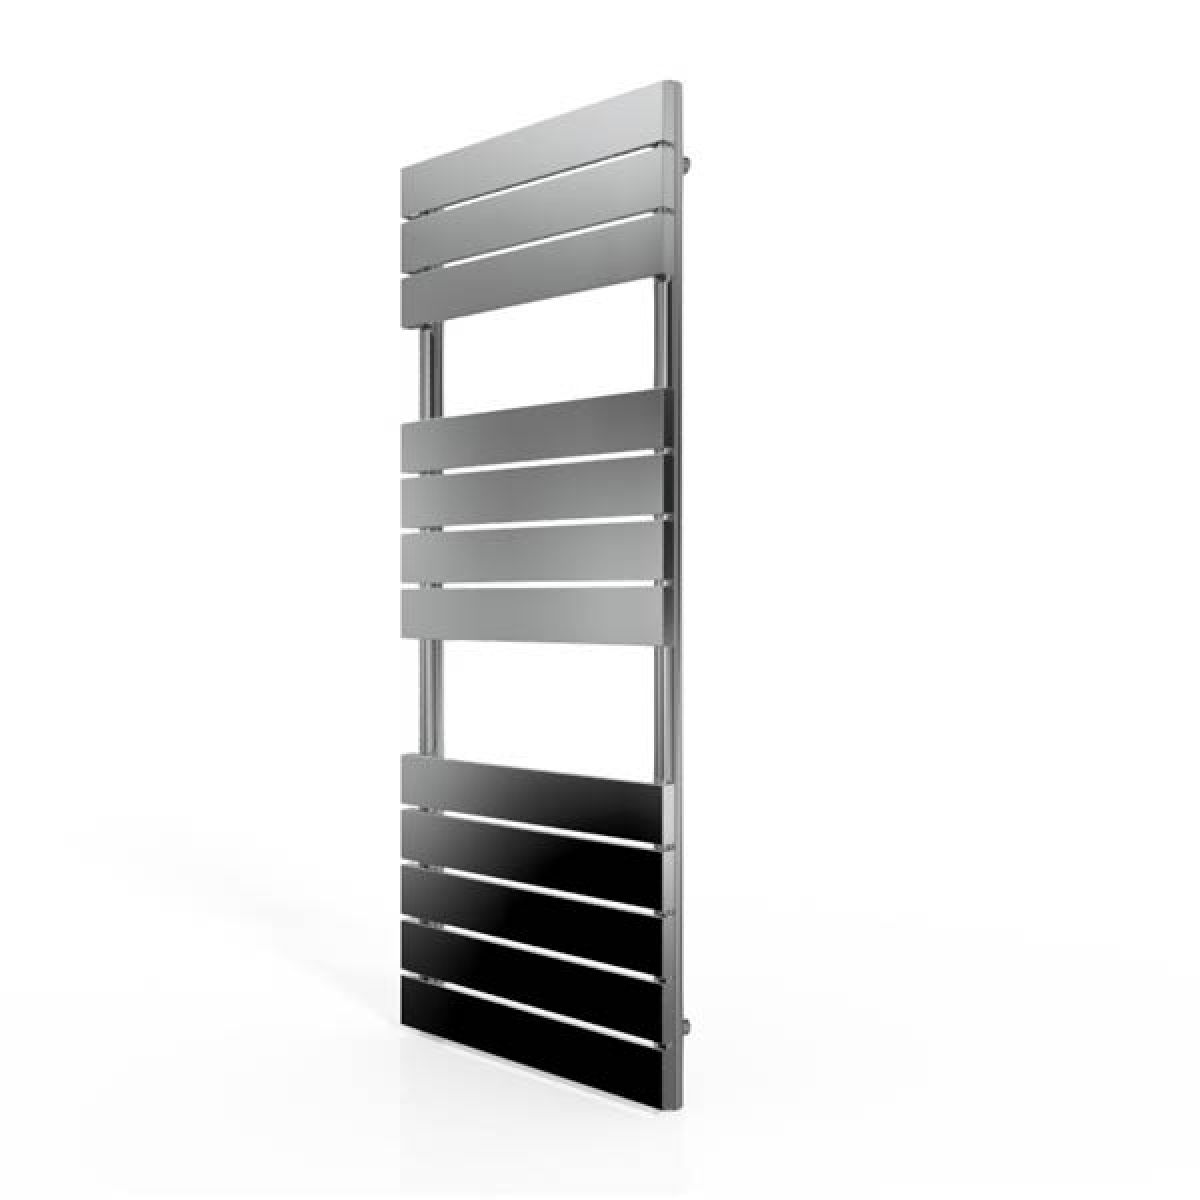 Cassellie Chrome Straight Towel Rail With Flat Profile 1200 x 500mm